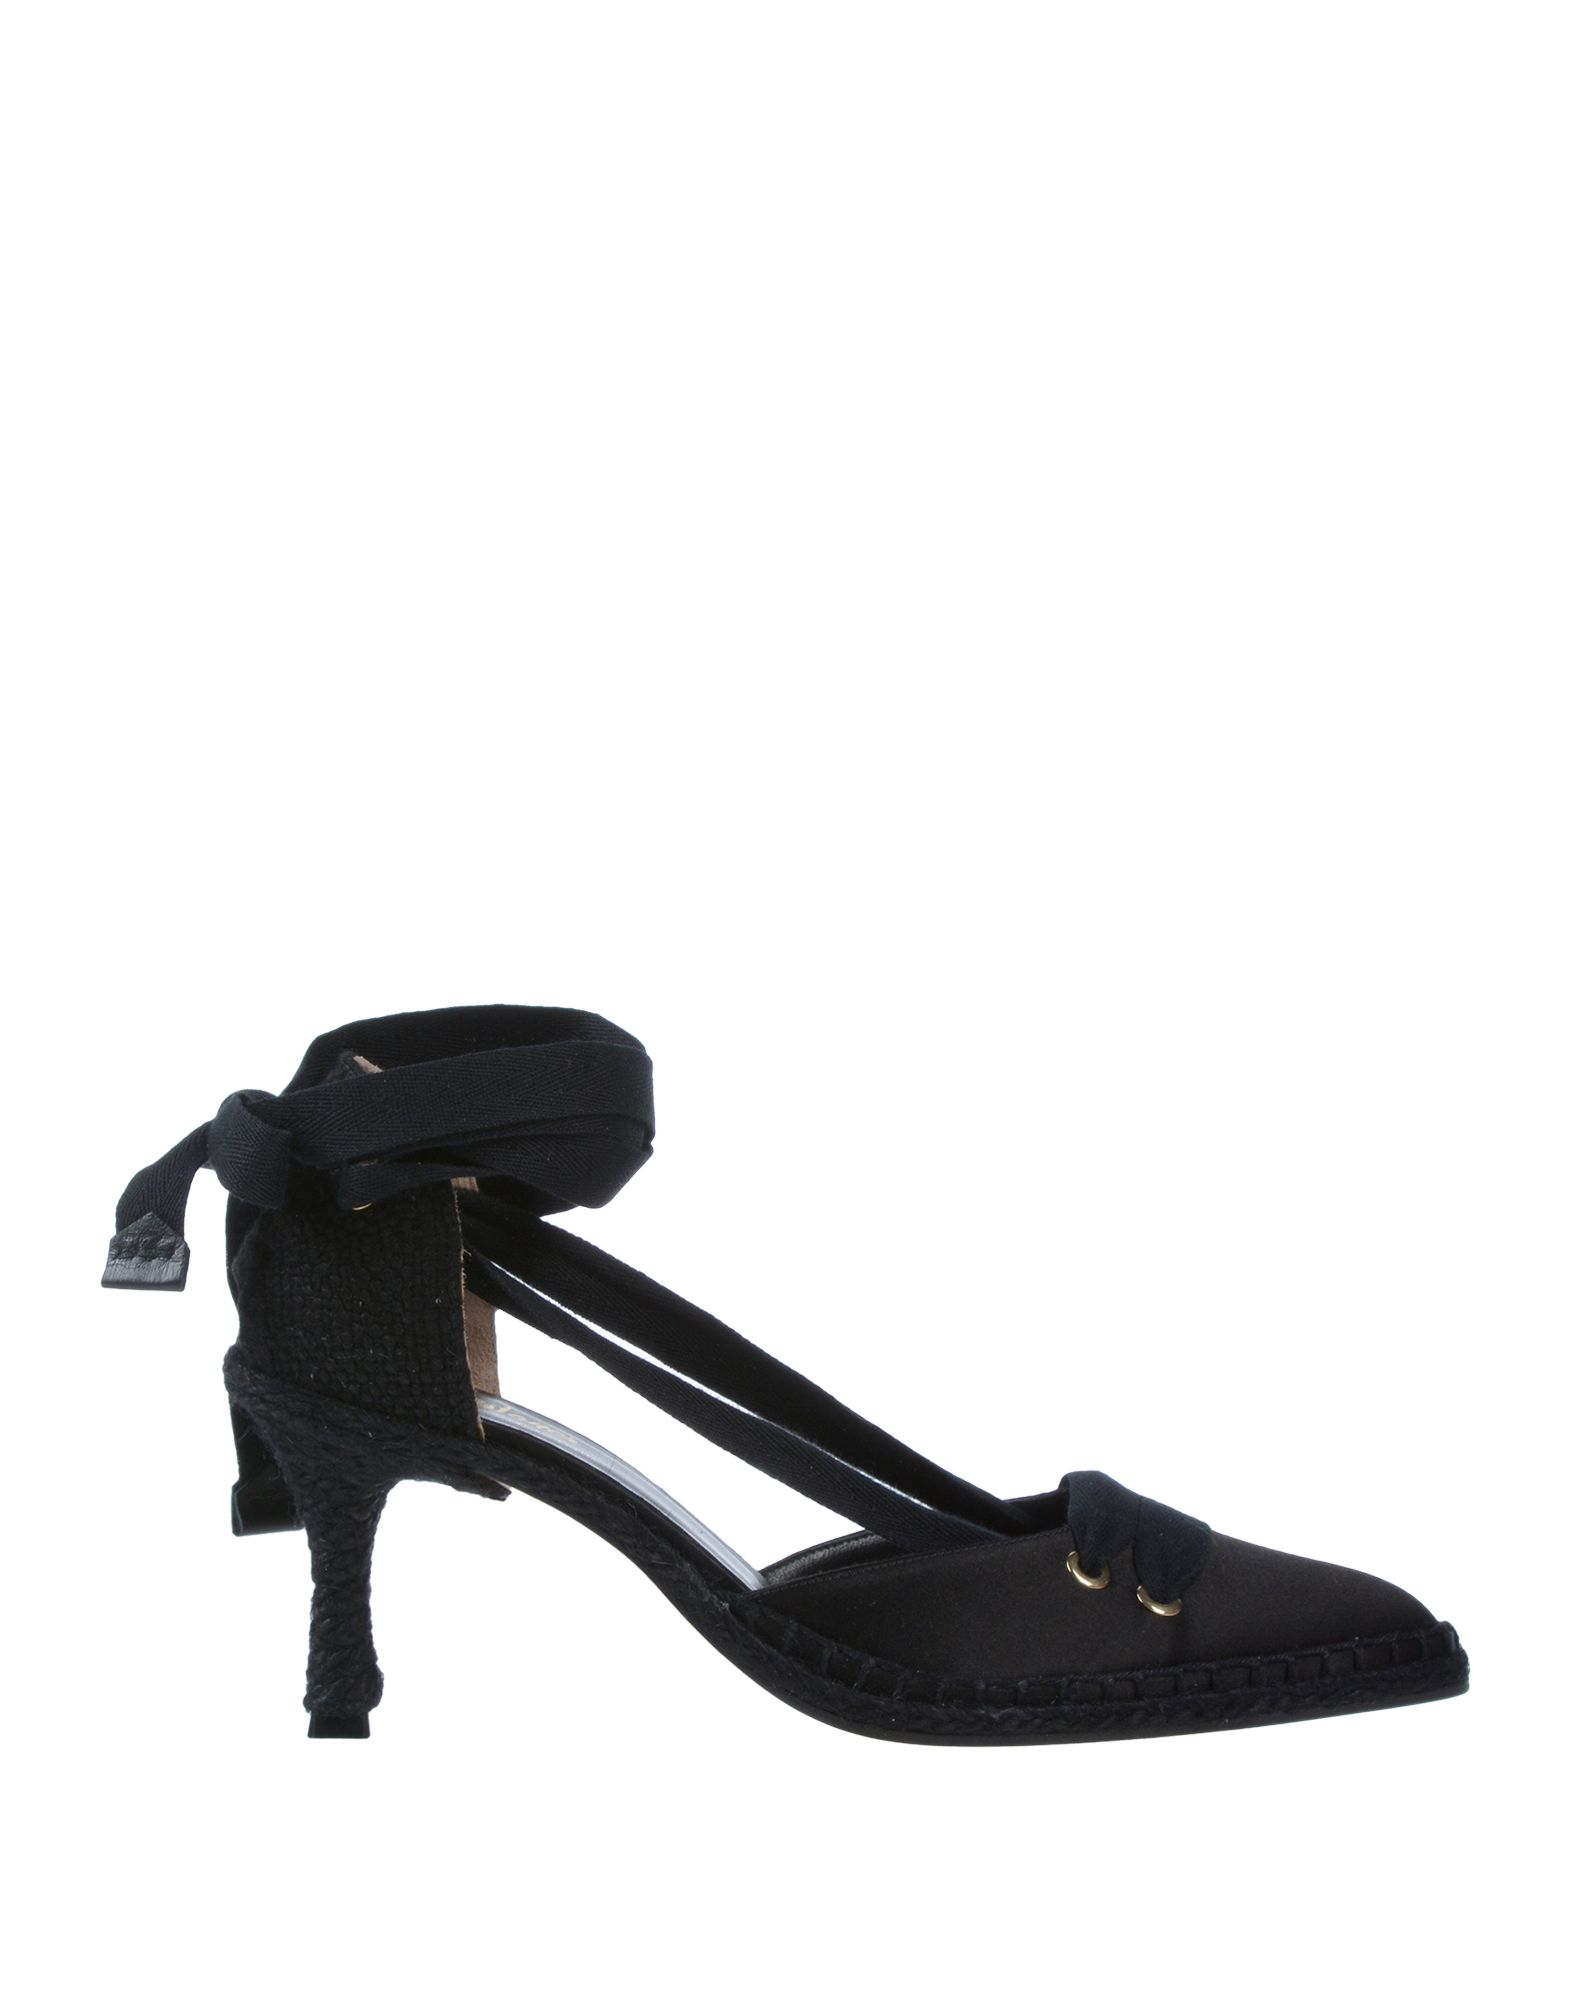 8007904da1bc2 Castañer By Manolo Blahnik Pump - Women Castañer By Manolo Blahnik ...